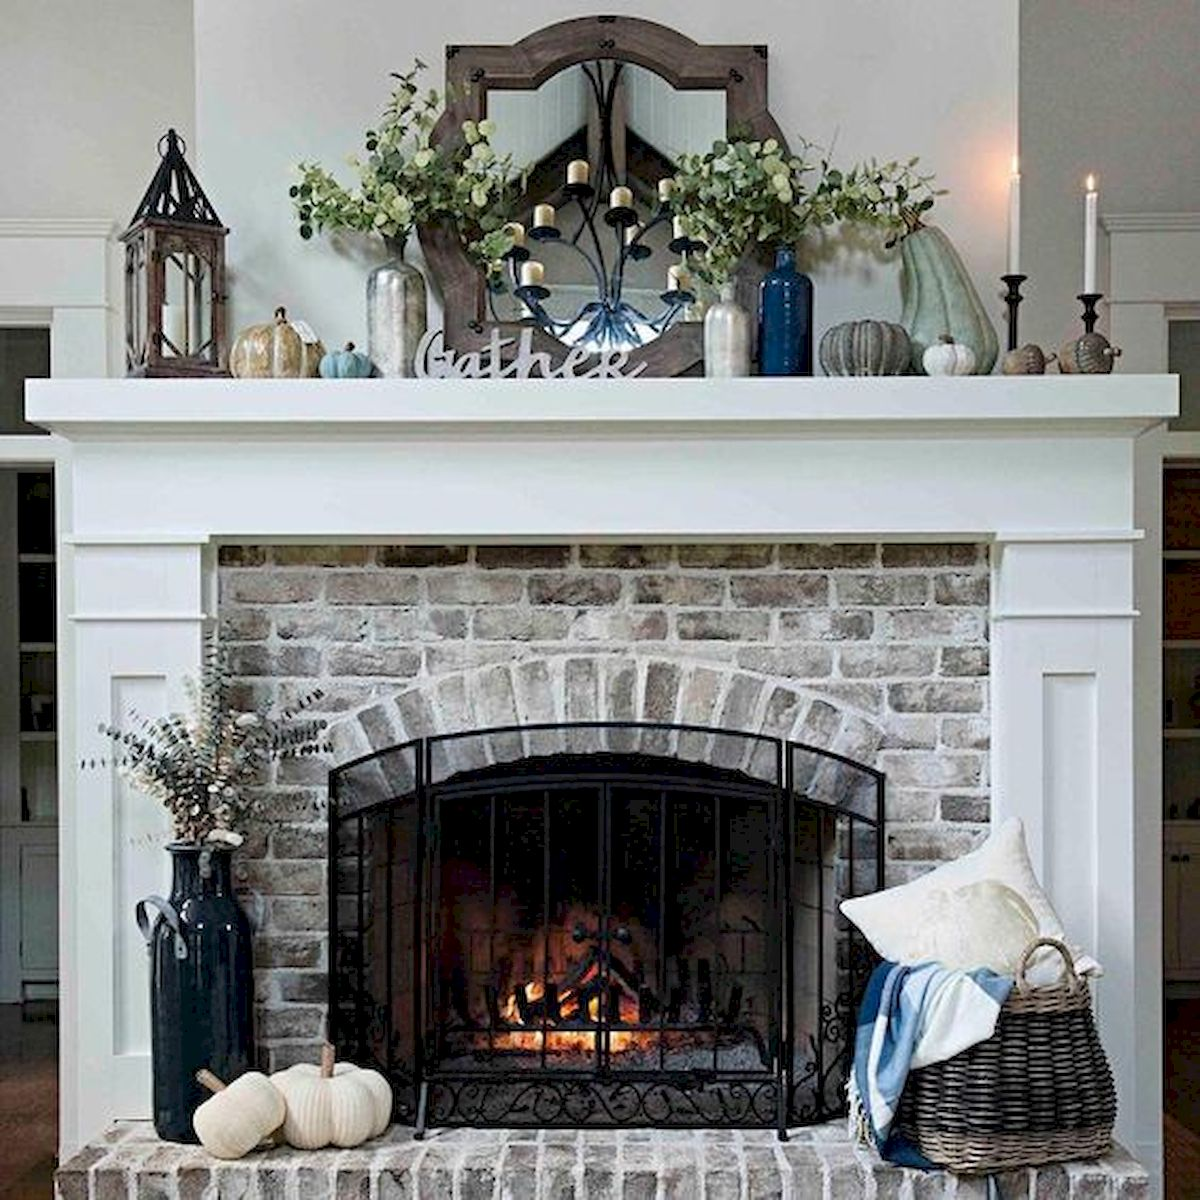 The Best Fireplace Ideas for Farmhouse (41)